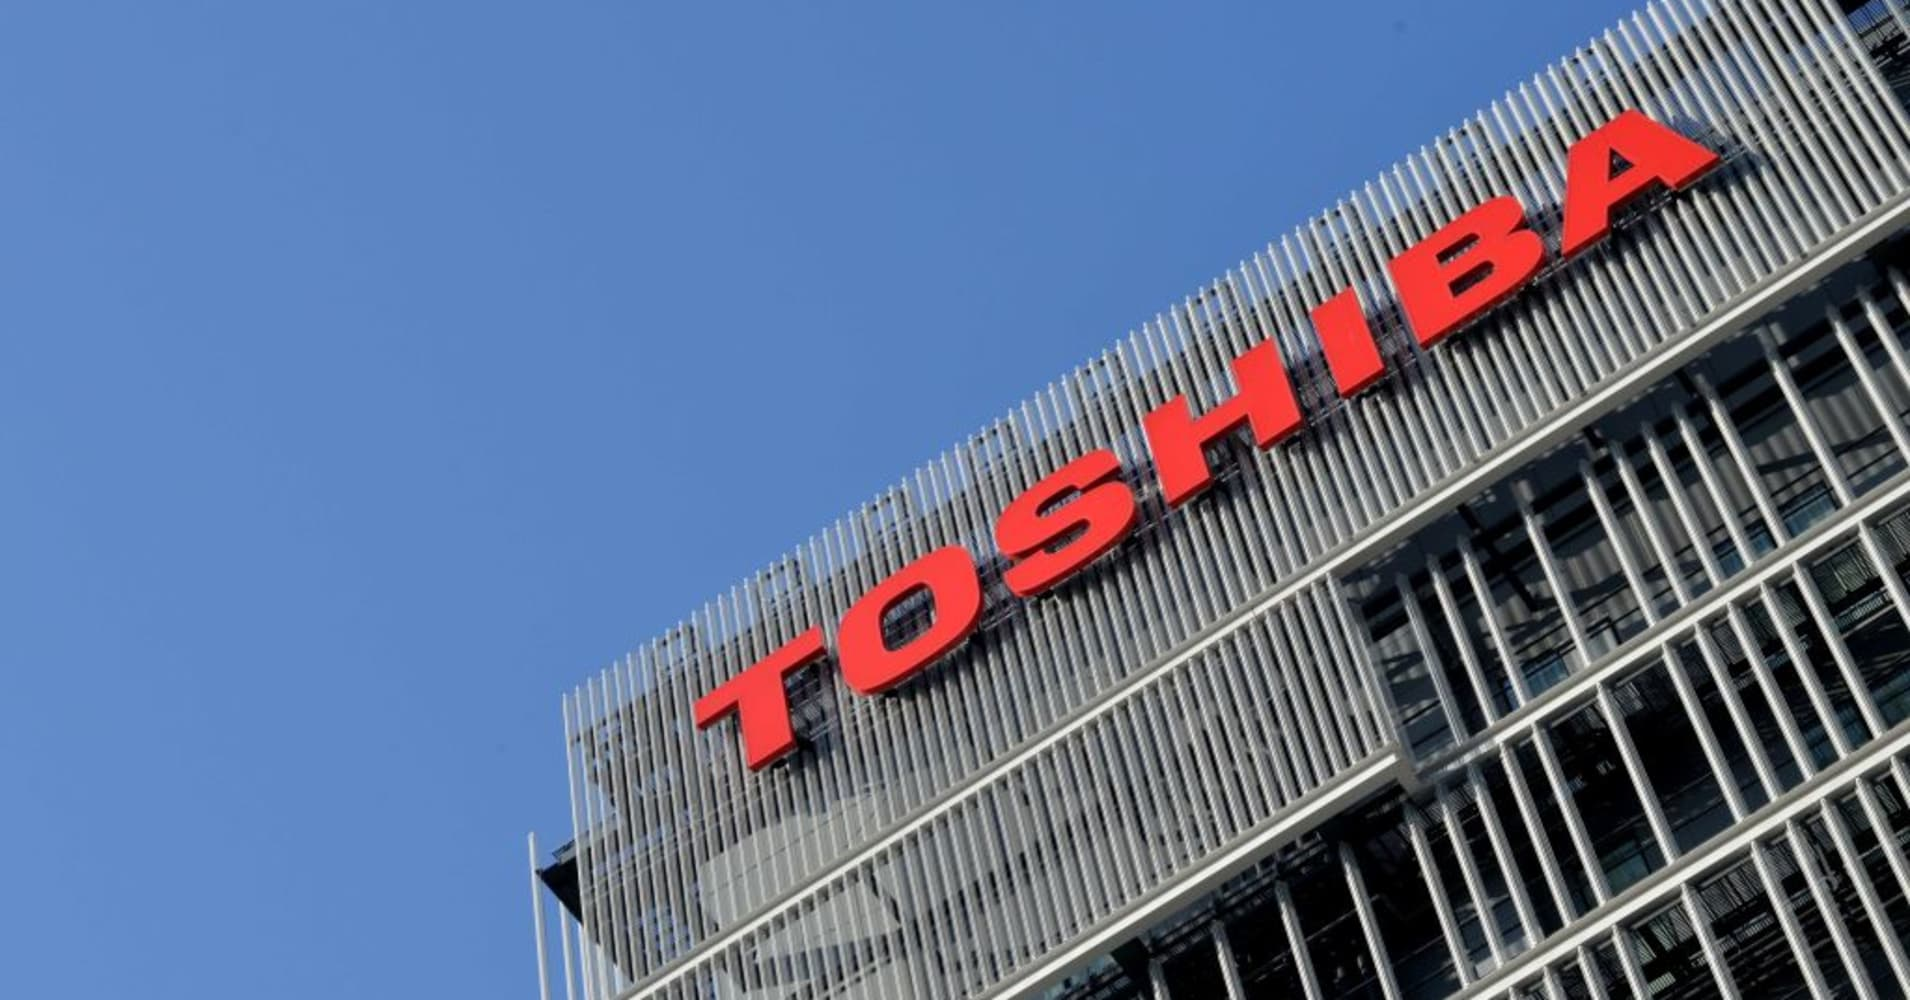 Toshiba said to have selected Bain-SK Hynix group to buy its memory business